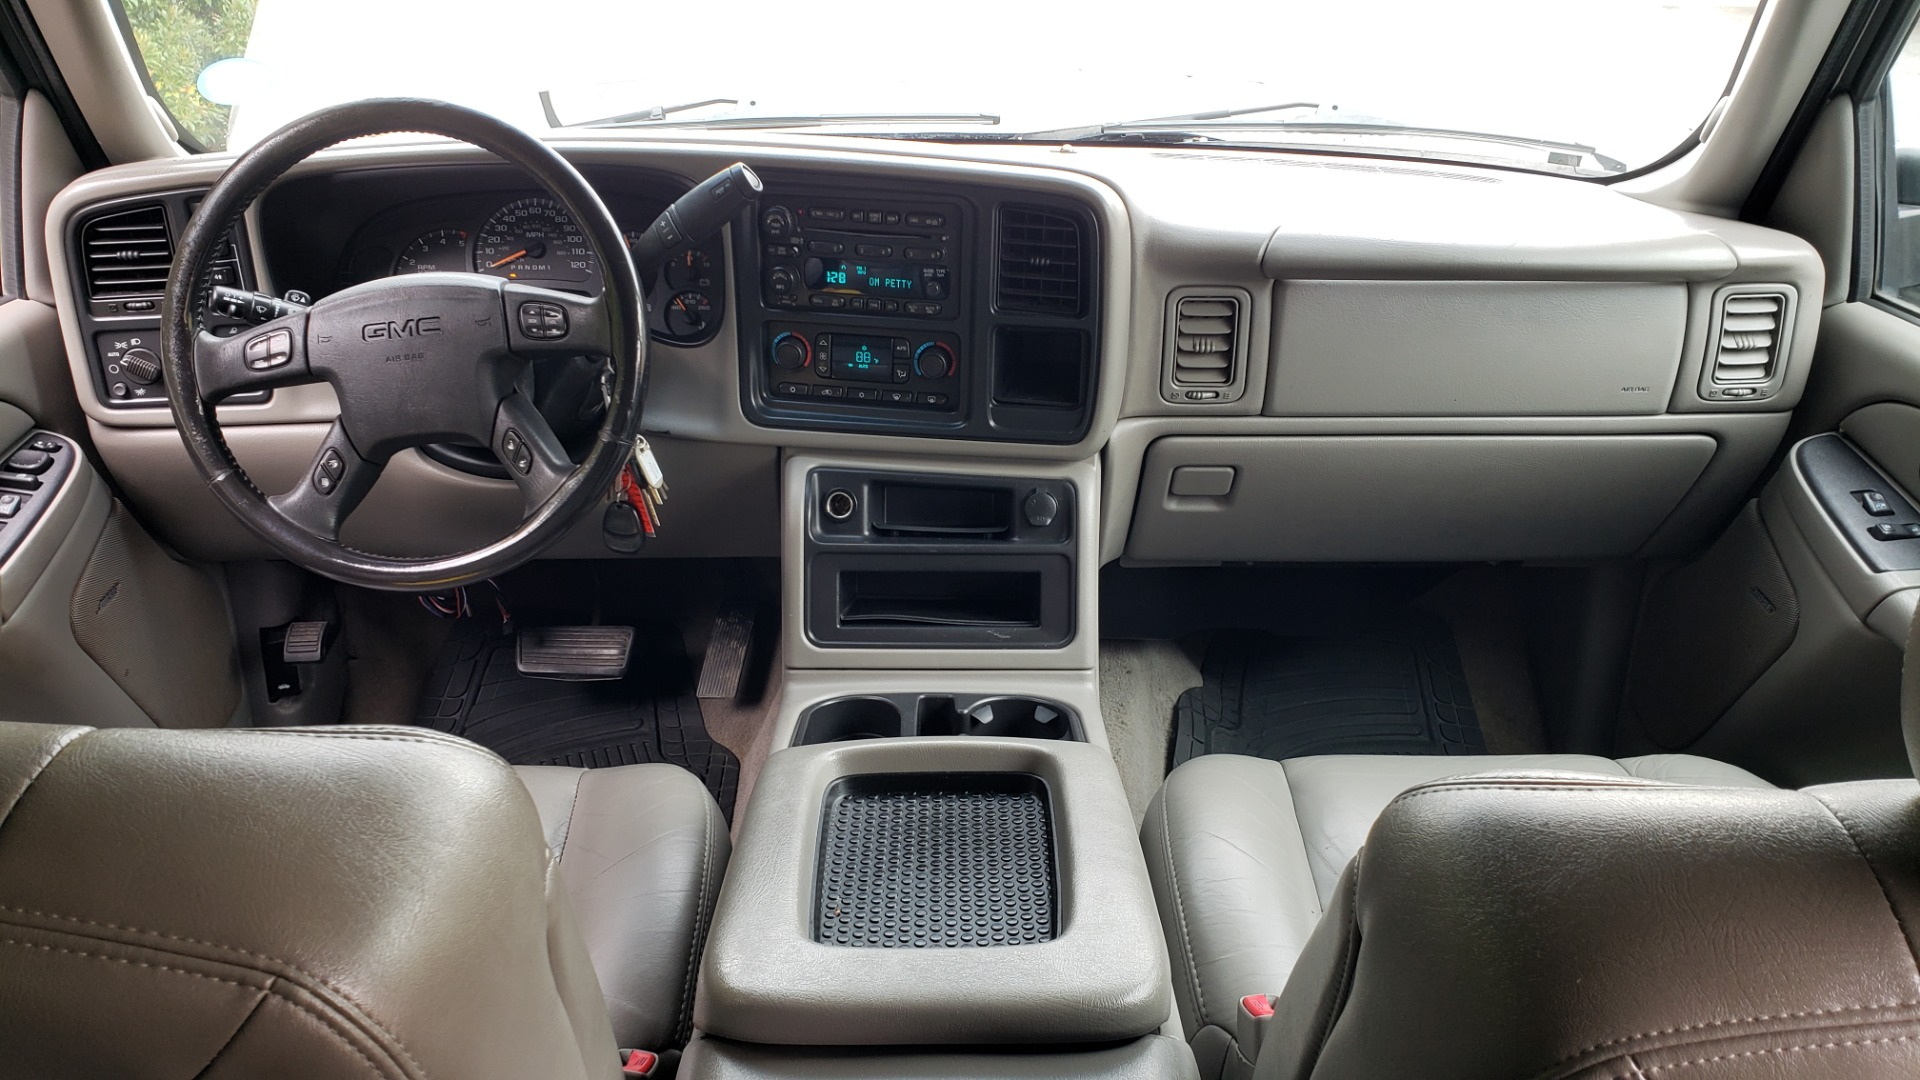 Used 2007 GMC SIERRA 2500HD CLASSIC SLT 4WD / 167WB / 6.6L DURAMAX / DOOMSDAY PREPPER for sale $13,999 at Formula Imports in Charlotte NC 28227 51